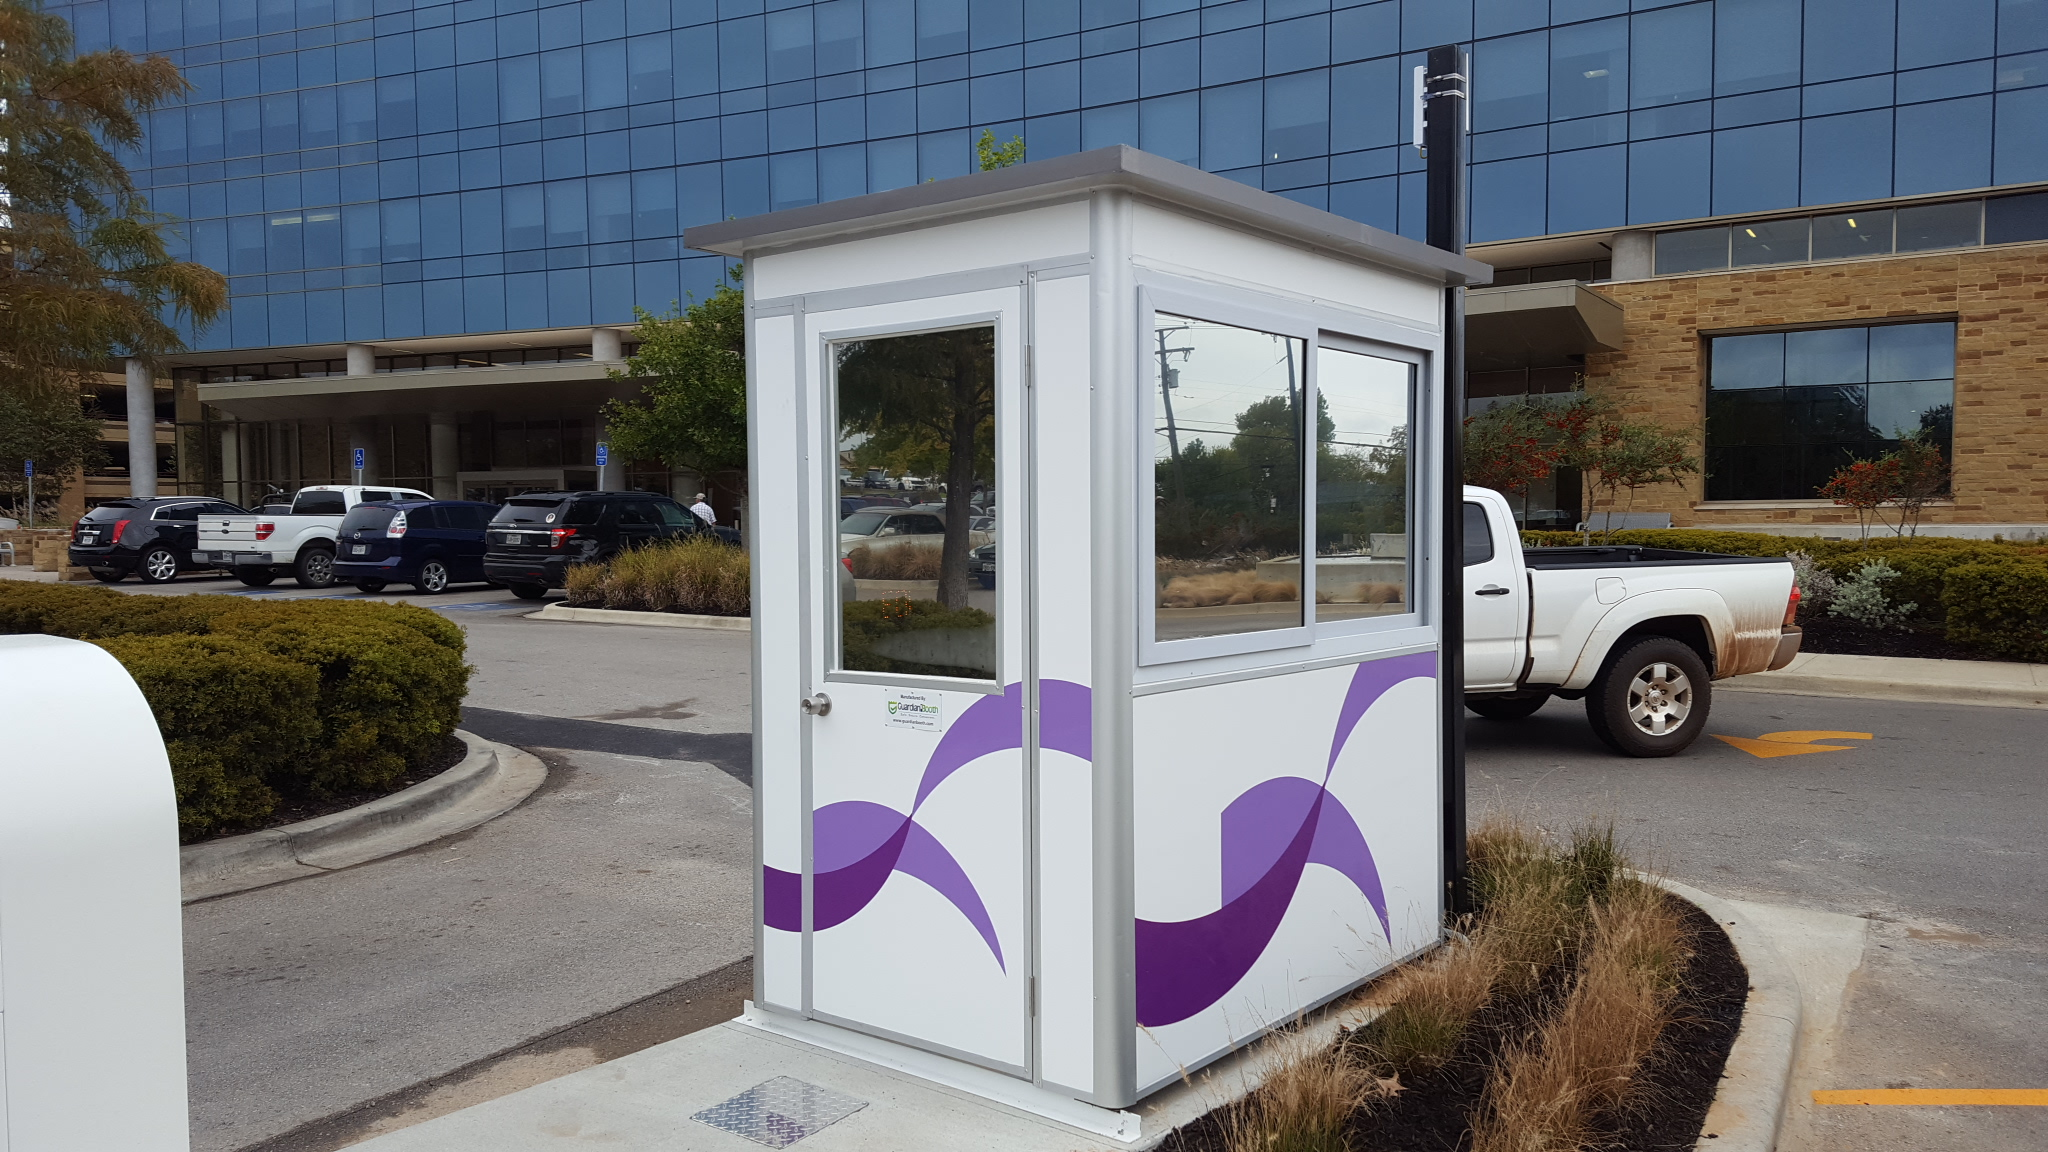 4x6 Parking Booth in Tyler, TX outside a clinic with Swing Door, Custom Graphics, Tinted Windows, and Custom Exterior Color